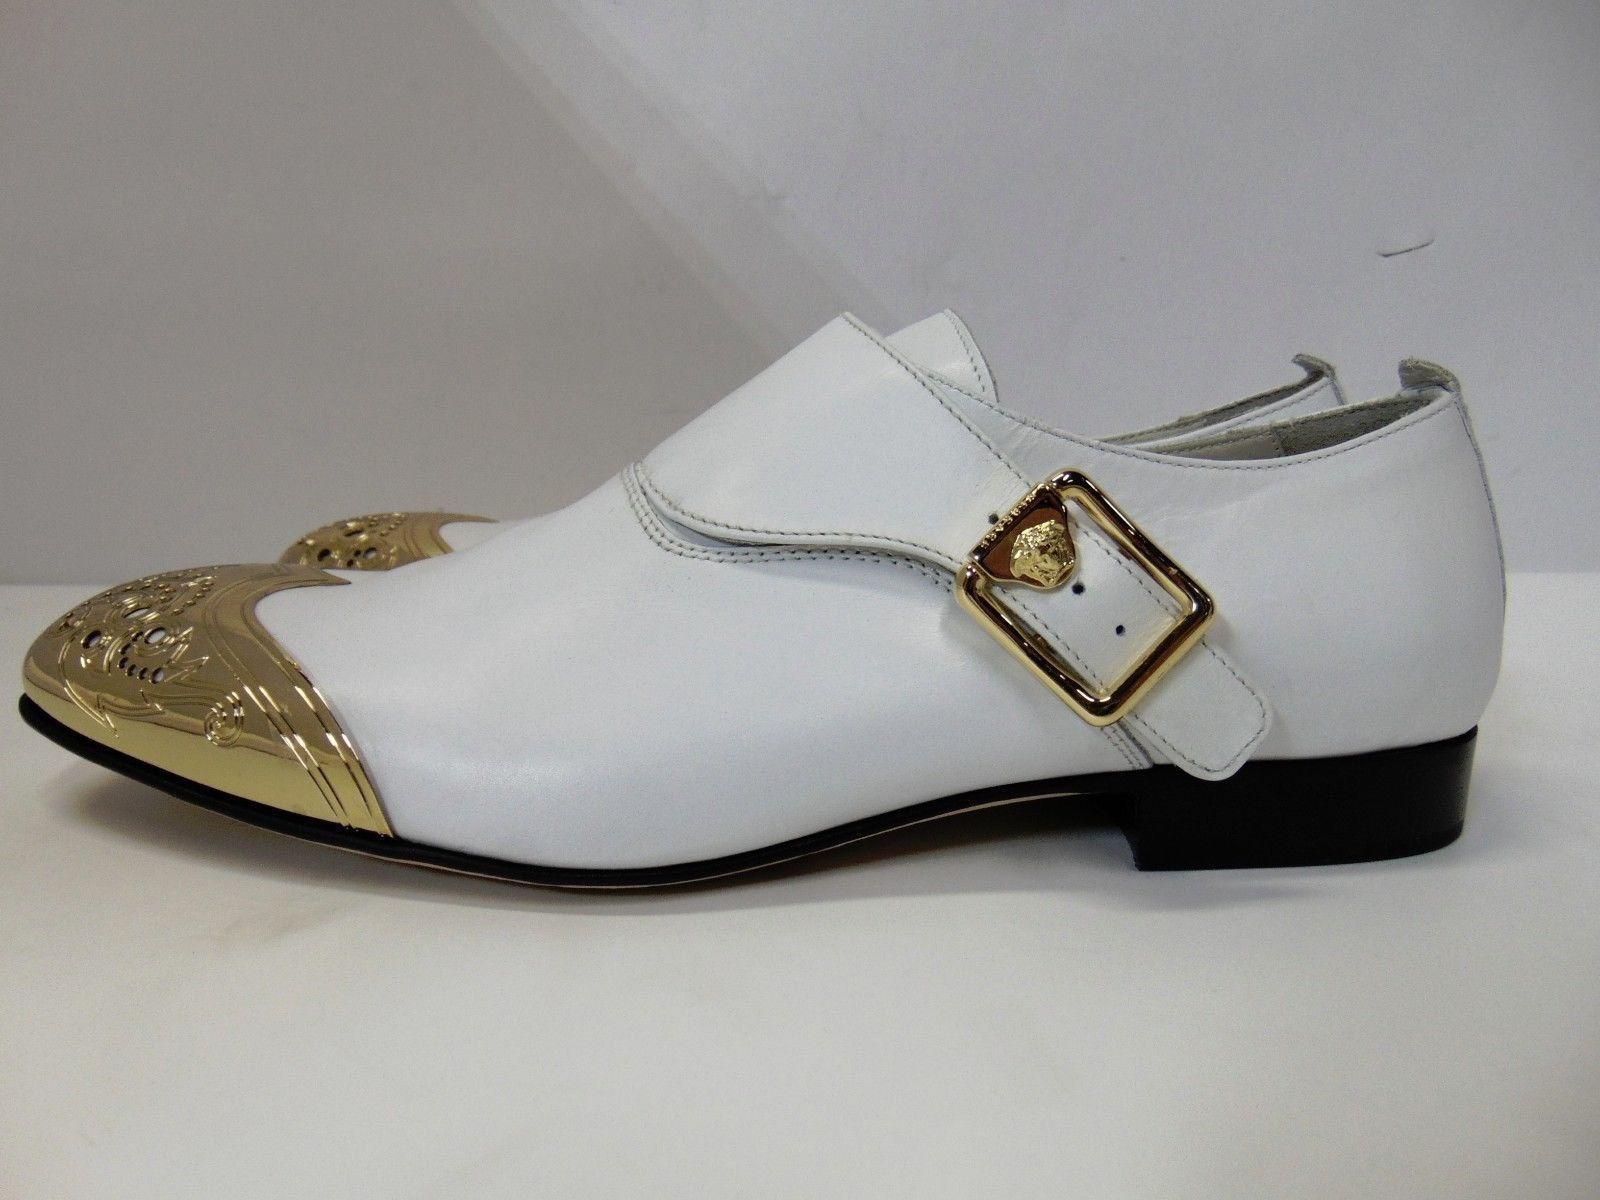 Versace Men S Dress Shoes Versace Mens Leather Dress Shoes Formal Oxford White Gold Tips It 42 Dress Shoes Men Leather Dress Shoes Versace Men [ 1200 x 1600 Pixel ]